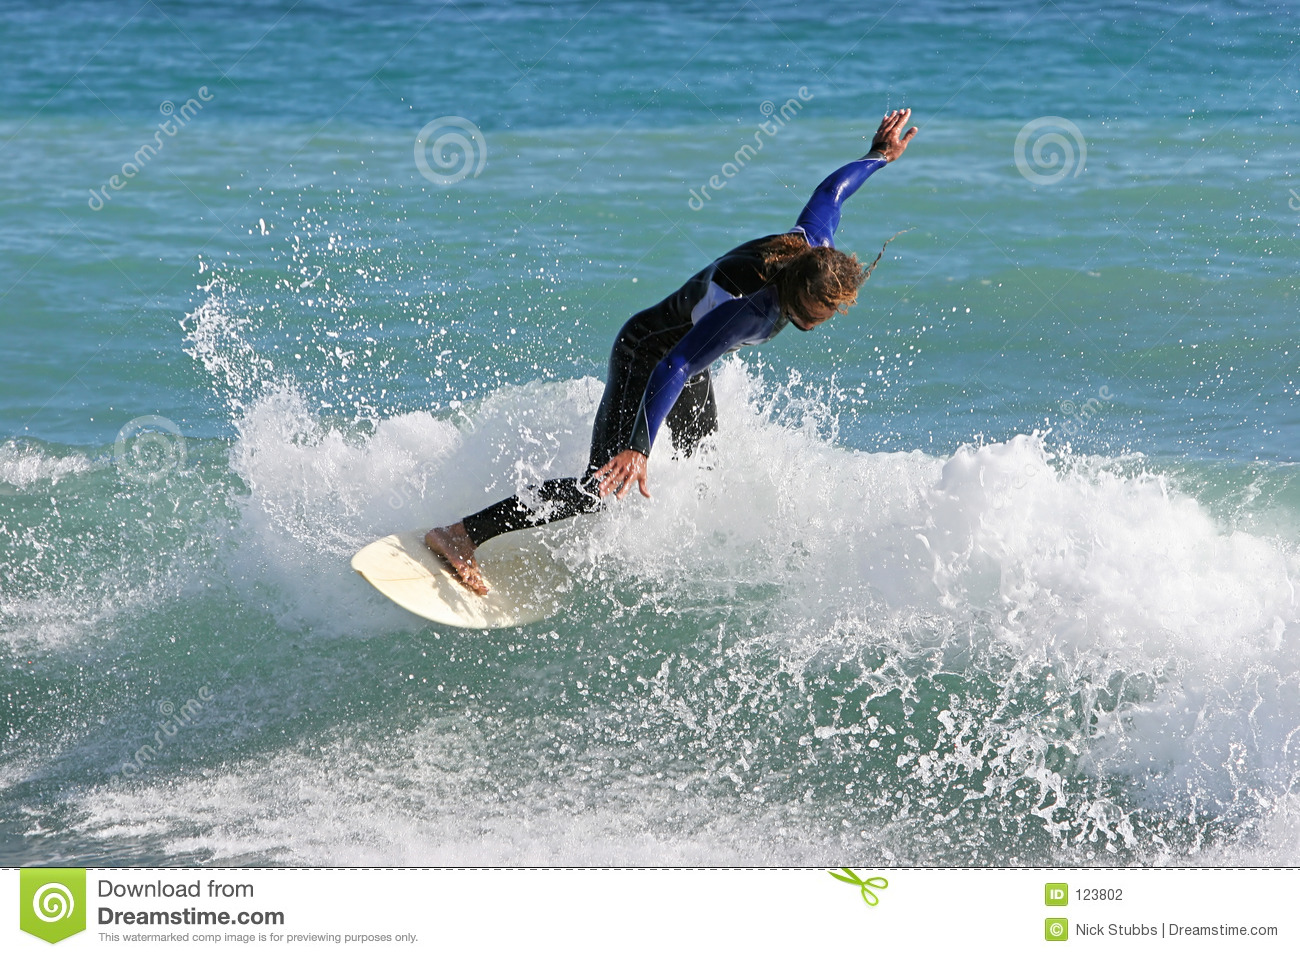 Experienced surfer carving an excellent wave